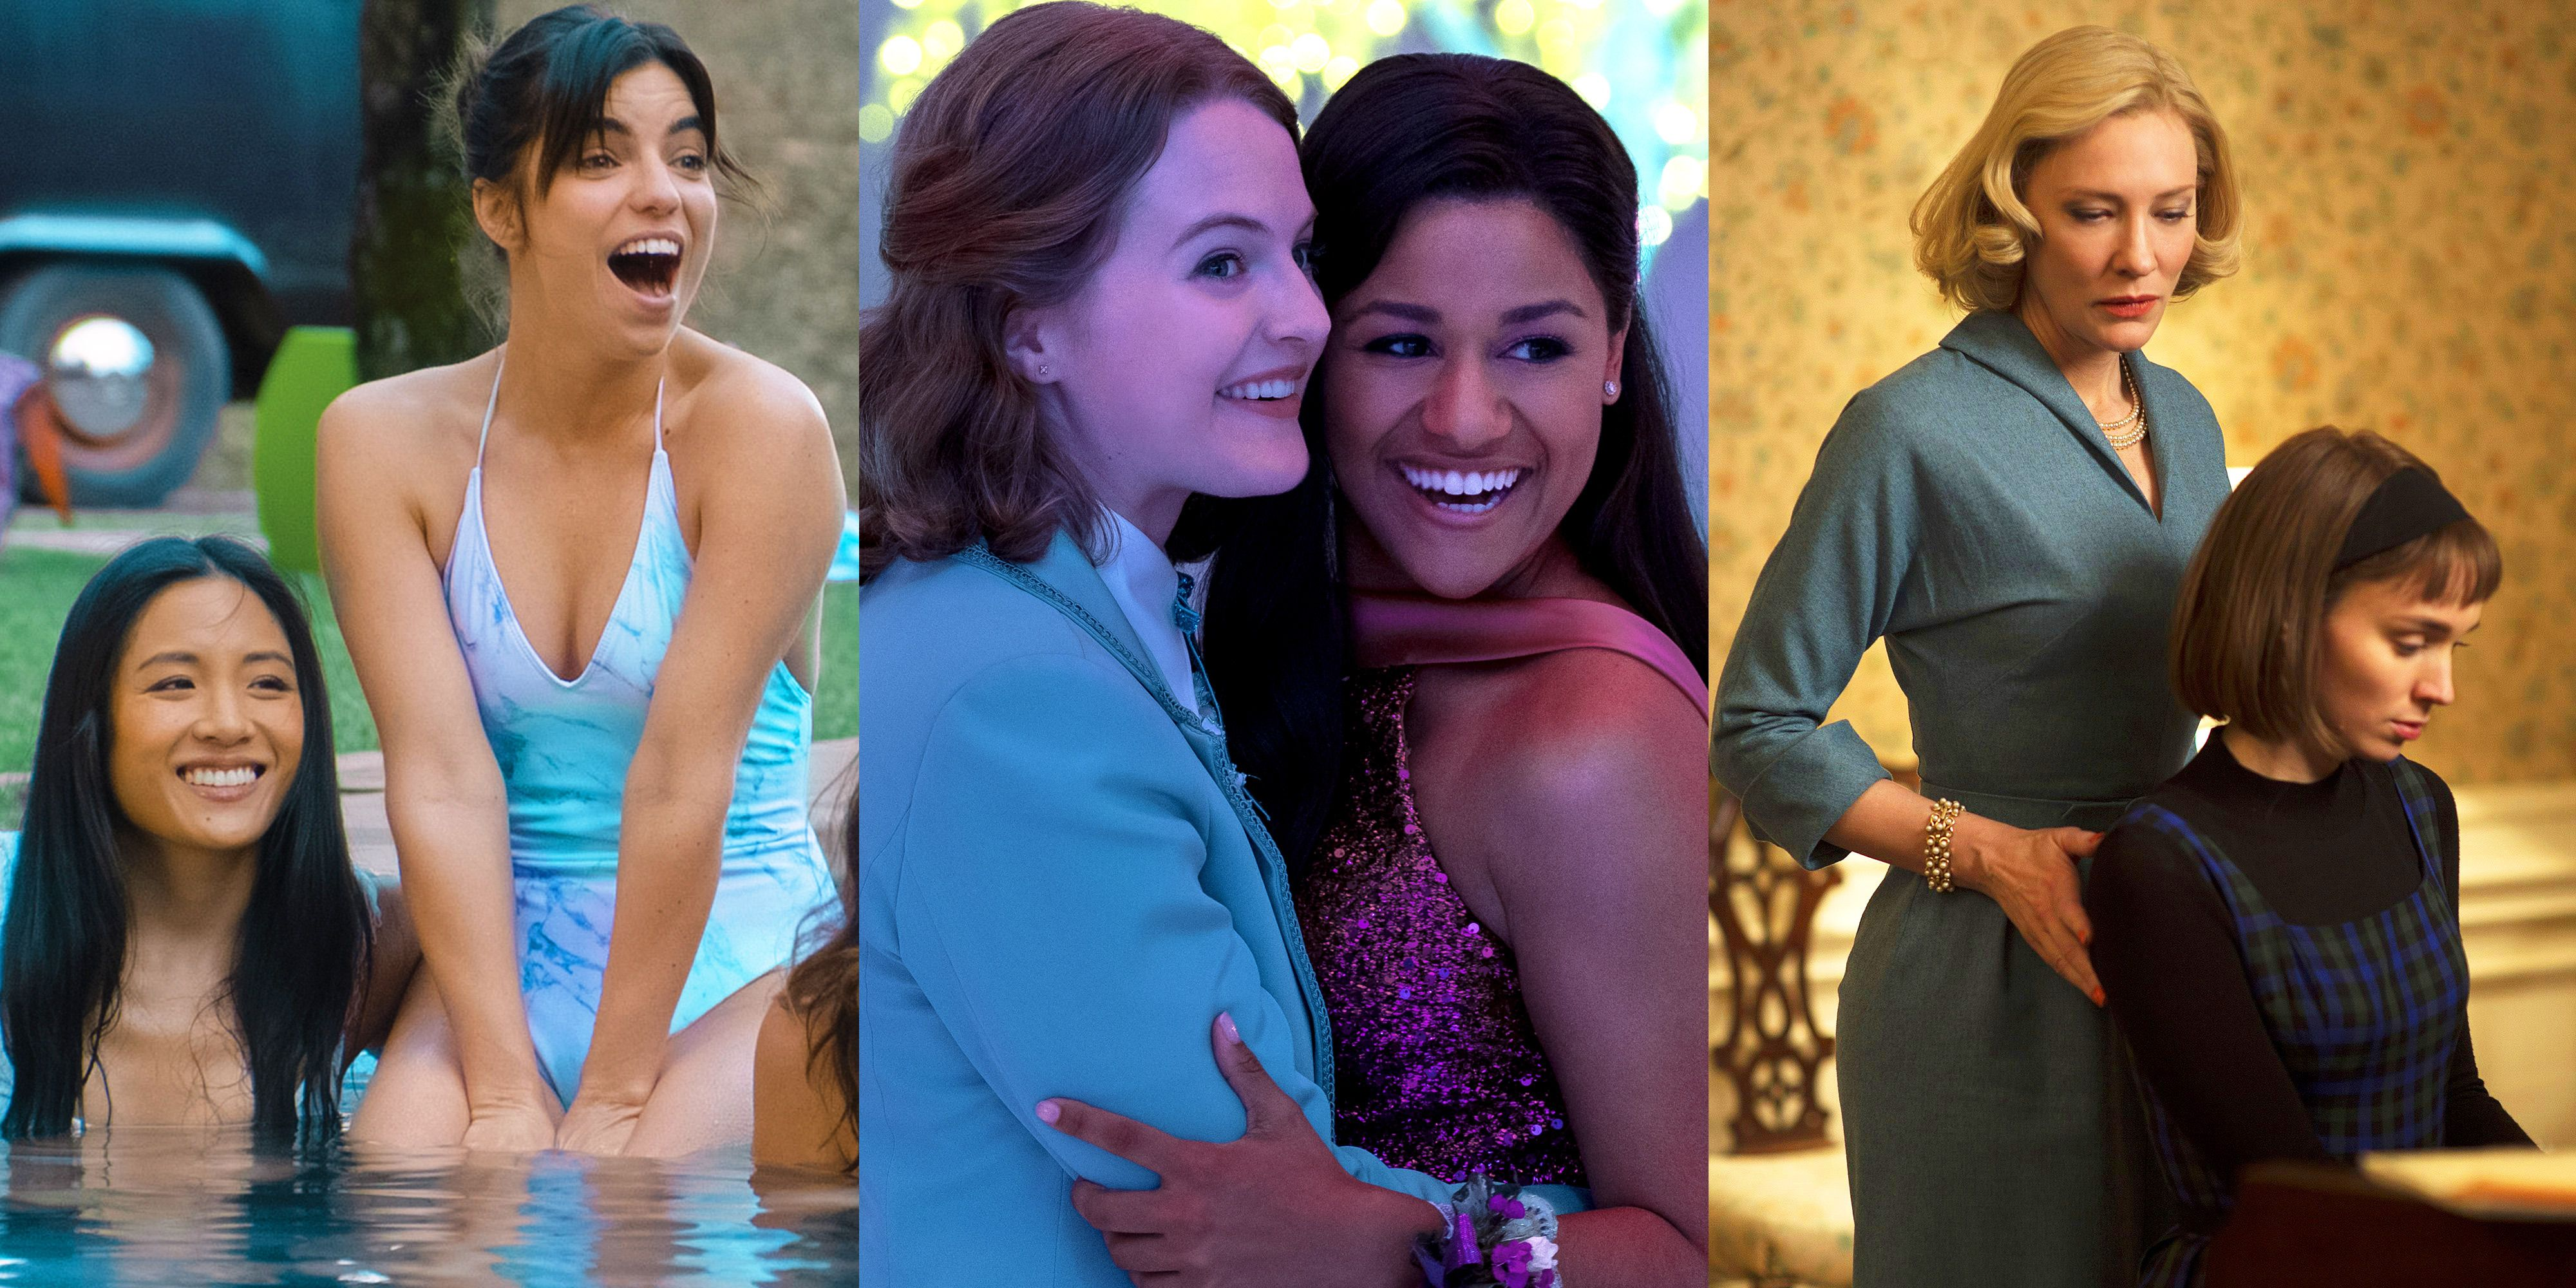 The Best Movies With Lesbian Characters on Netflix